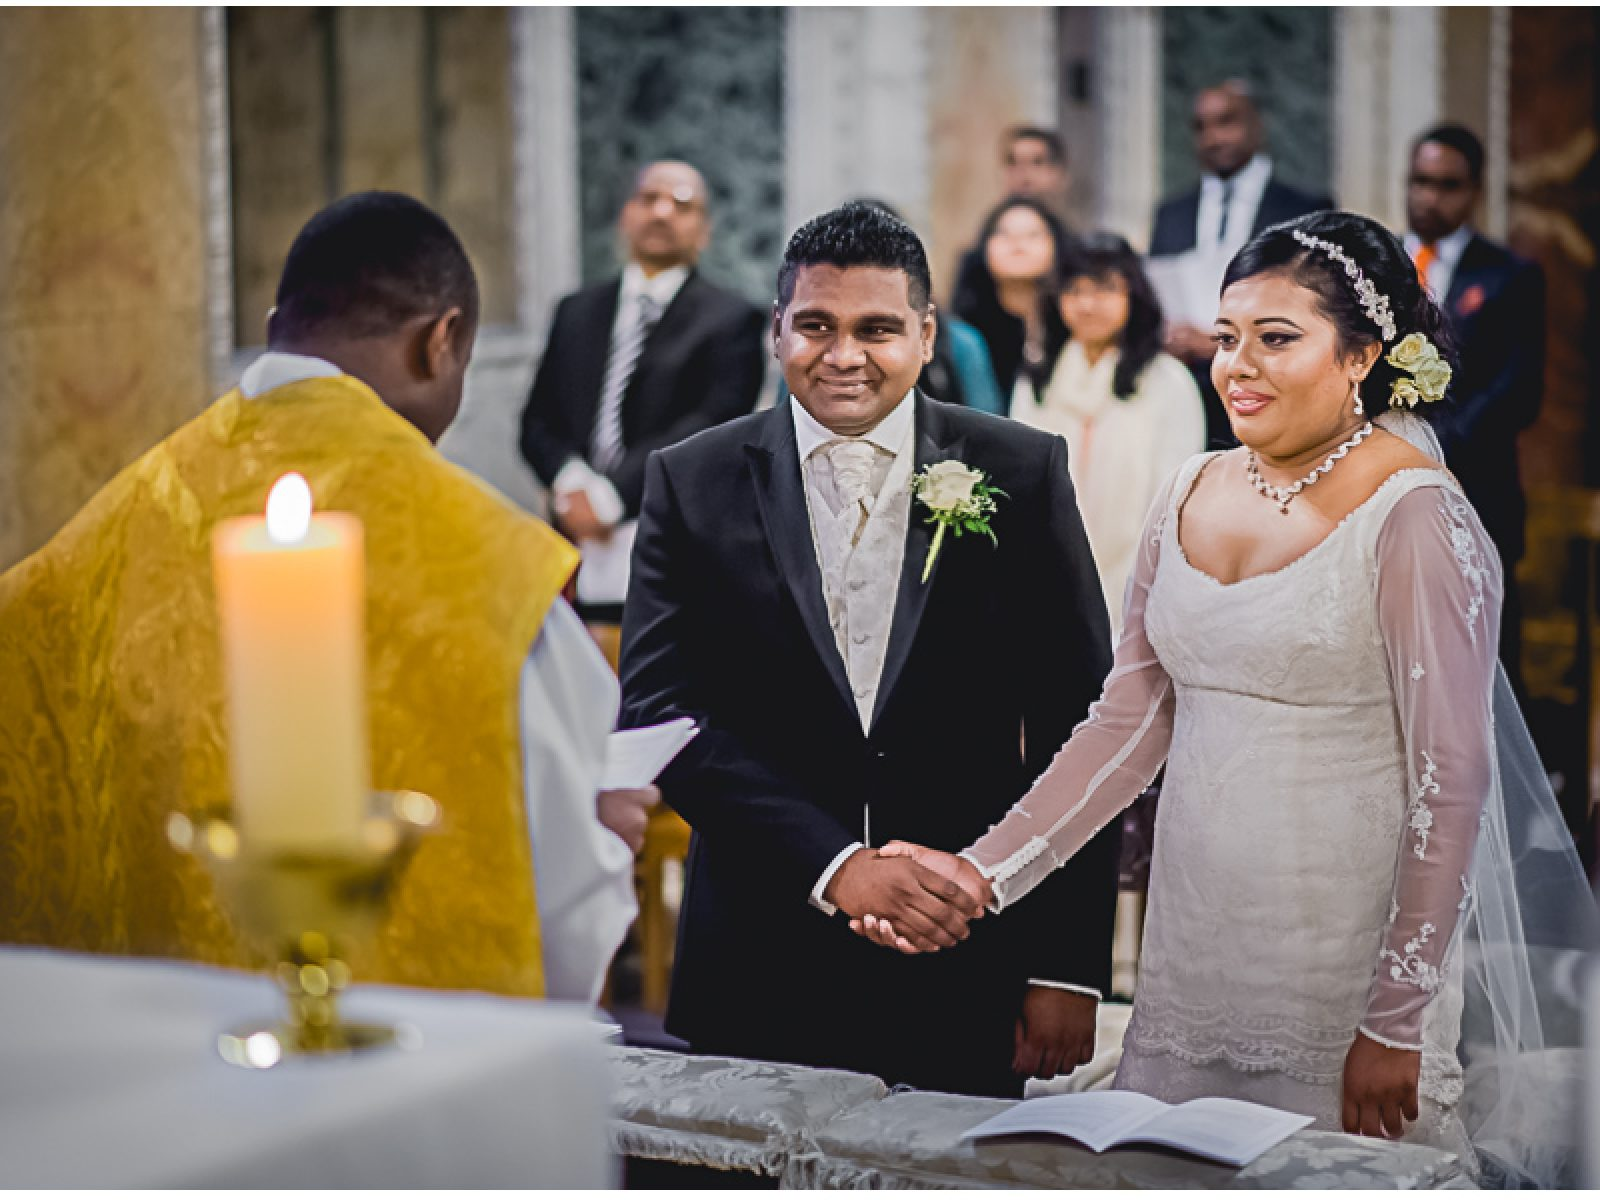 531 1600x1200 - Darshani and Anthony - wedding photographer in London